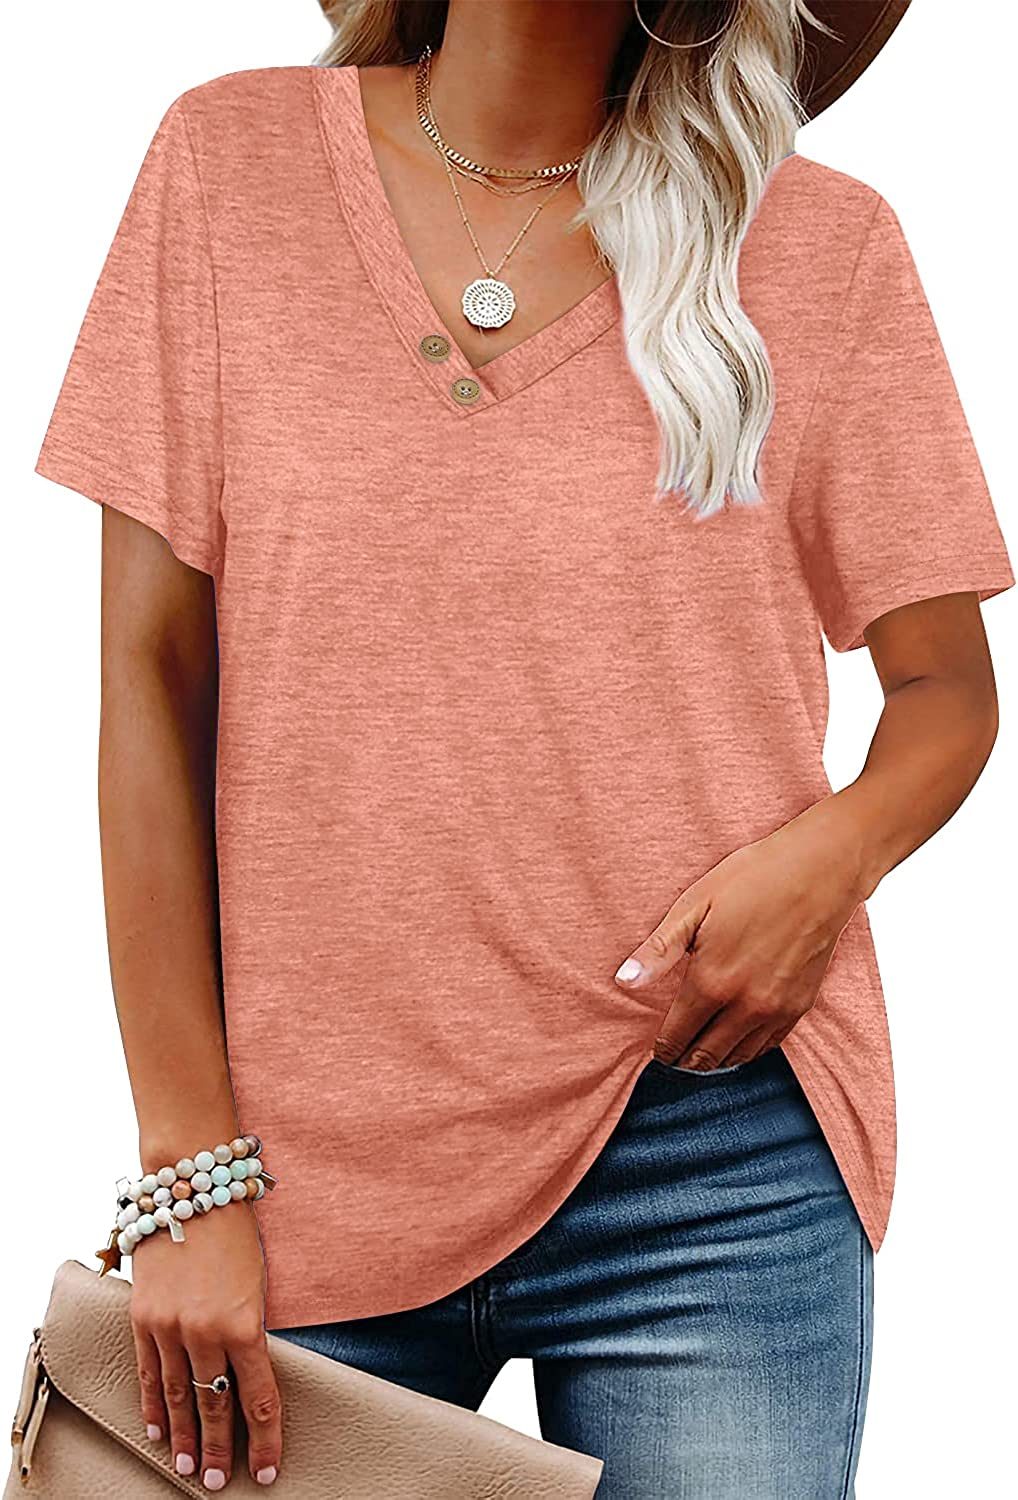 Womens Casual Tunic Tops V Neck Short Sleeve Blouses Button Basic Loose Fitting Long Shirts